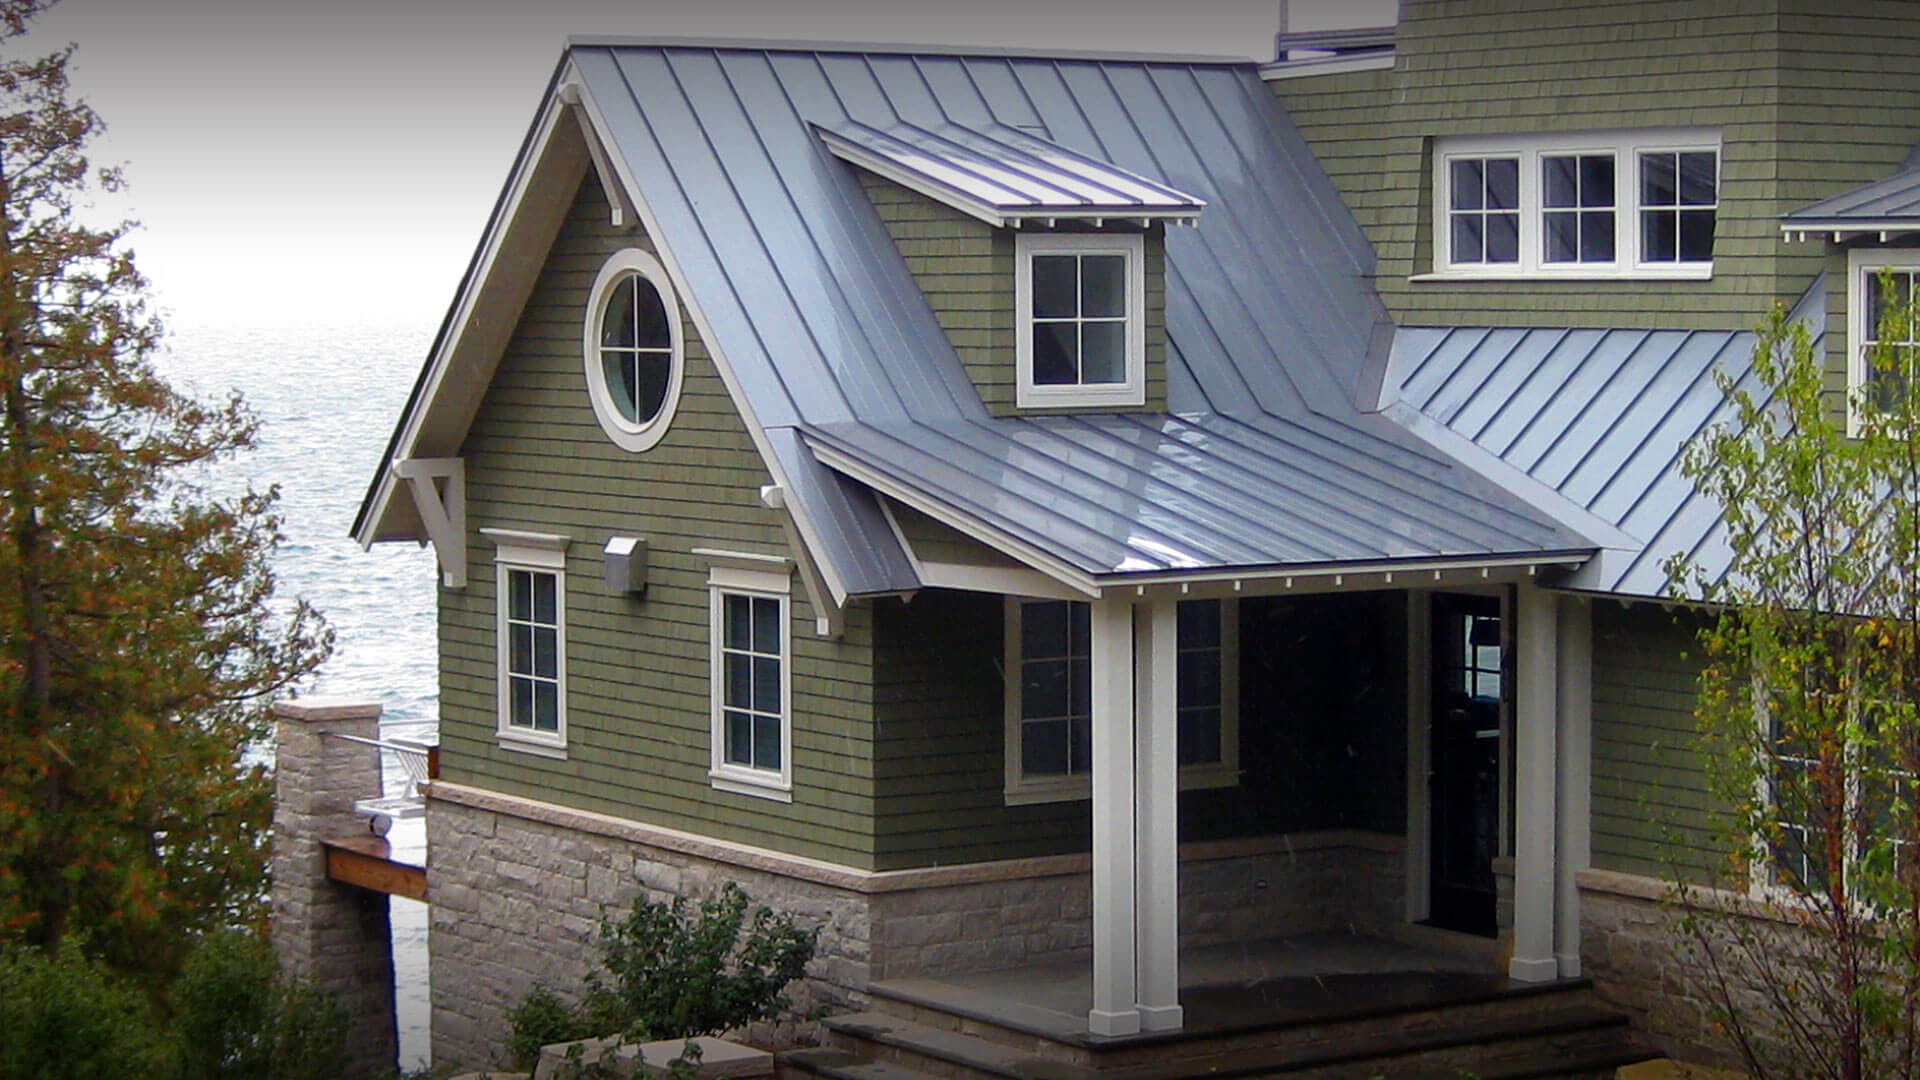 Dan Perkins Metal Roofing Serving Northern Michigan